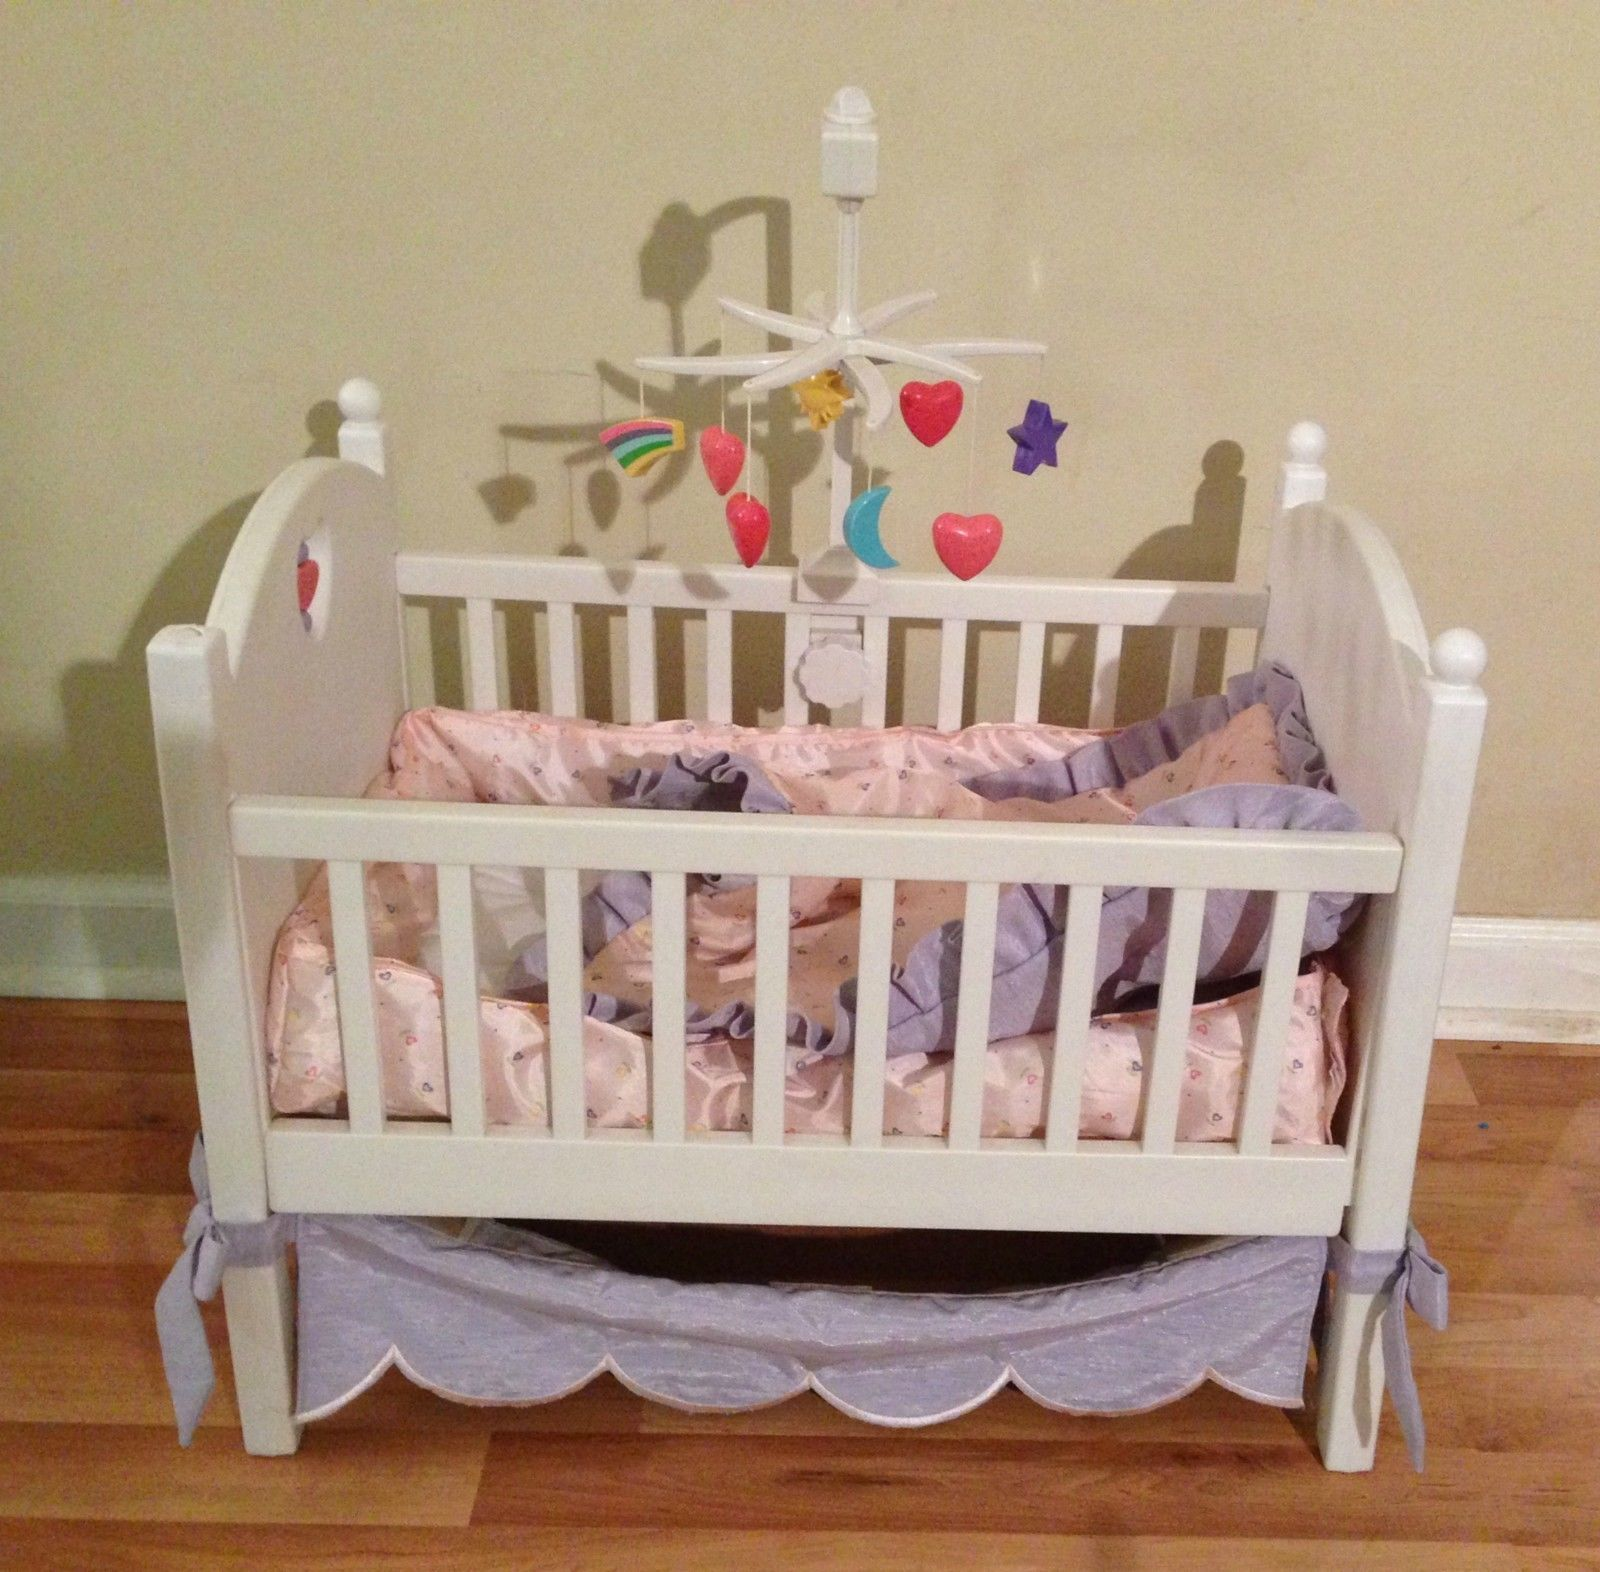 Used crib for sale ebay - Great Complete Retired American Girl Bitty Baby Crib Canopy Mobile Bedding Ebay